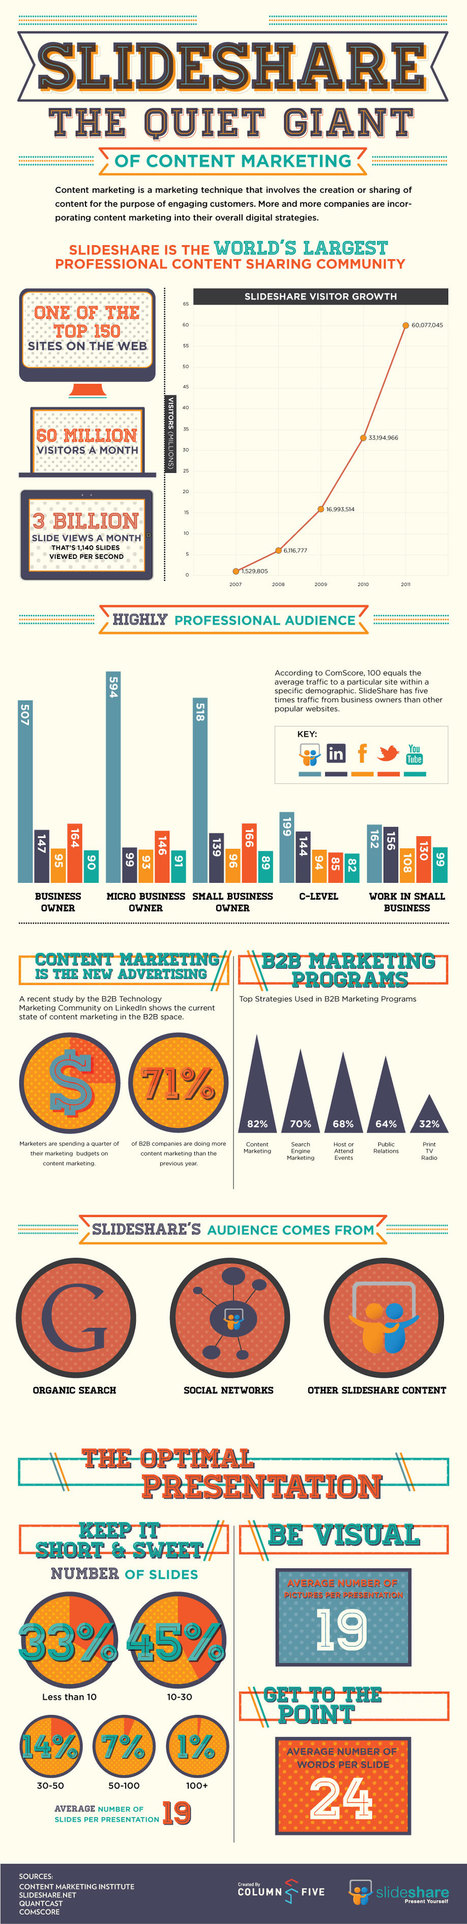 Slideshare Infographic: The Quiet Giant of Content Marketing | Market to real people | Scoop.it